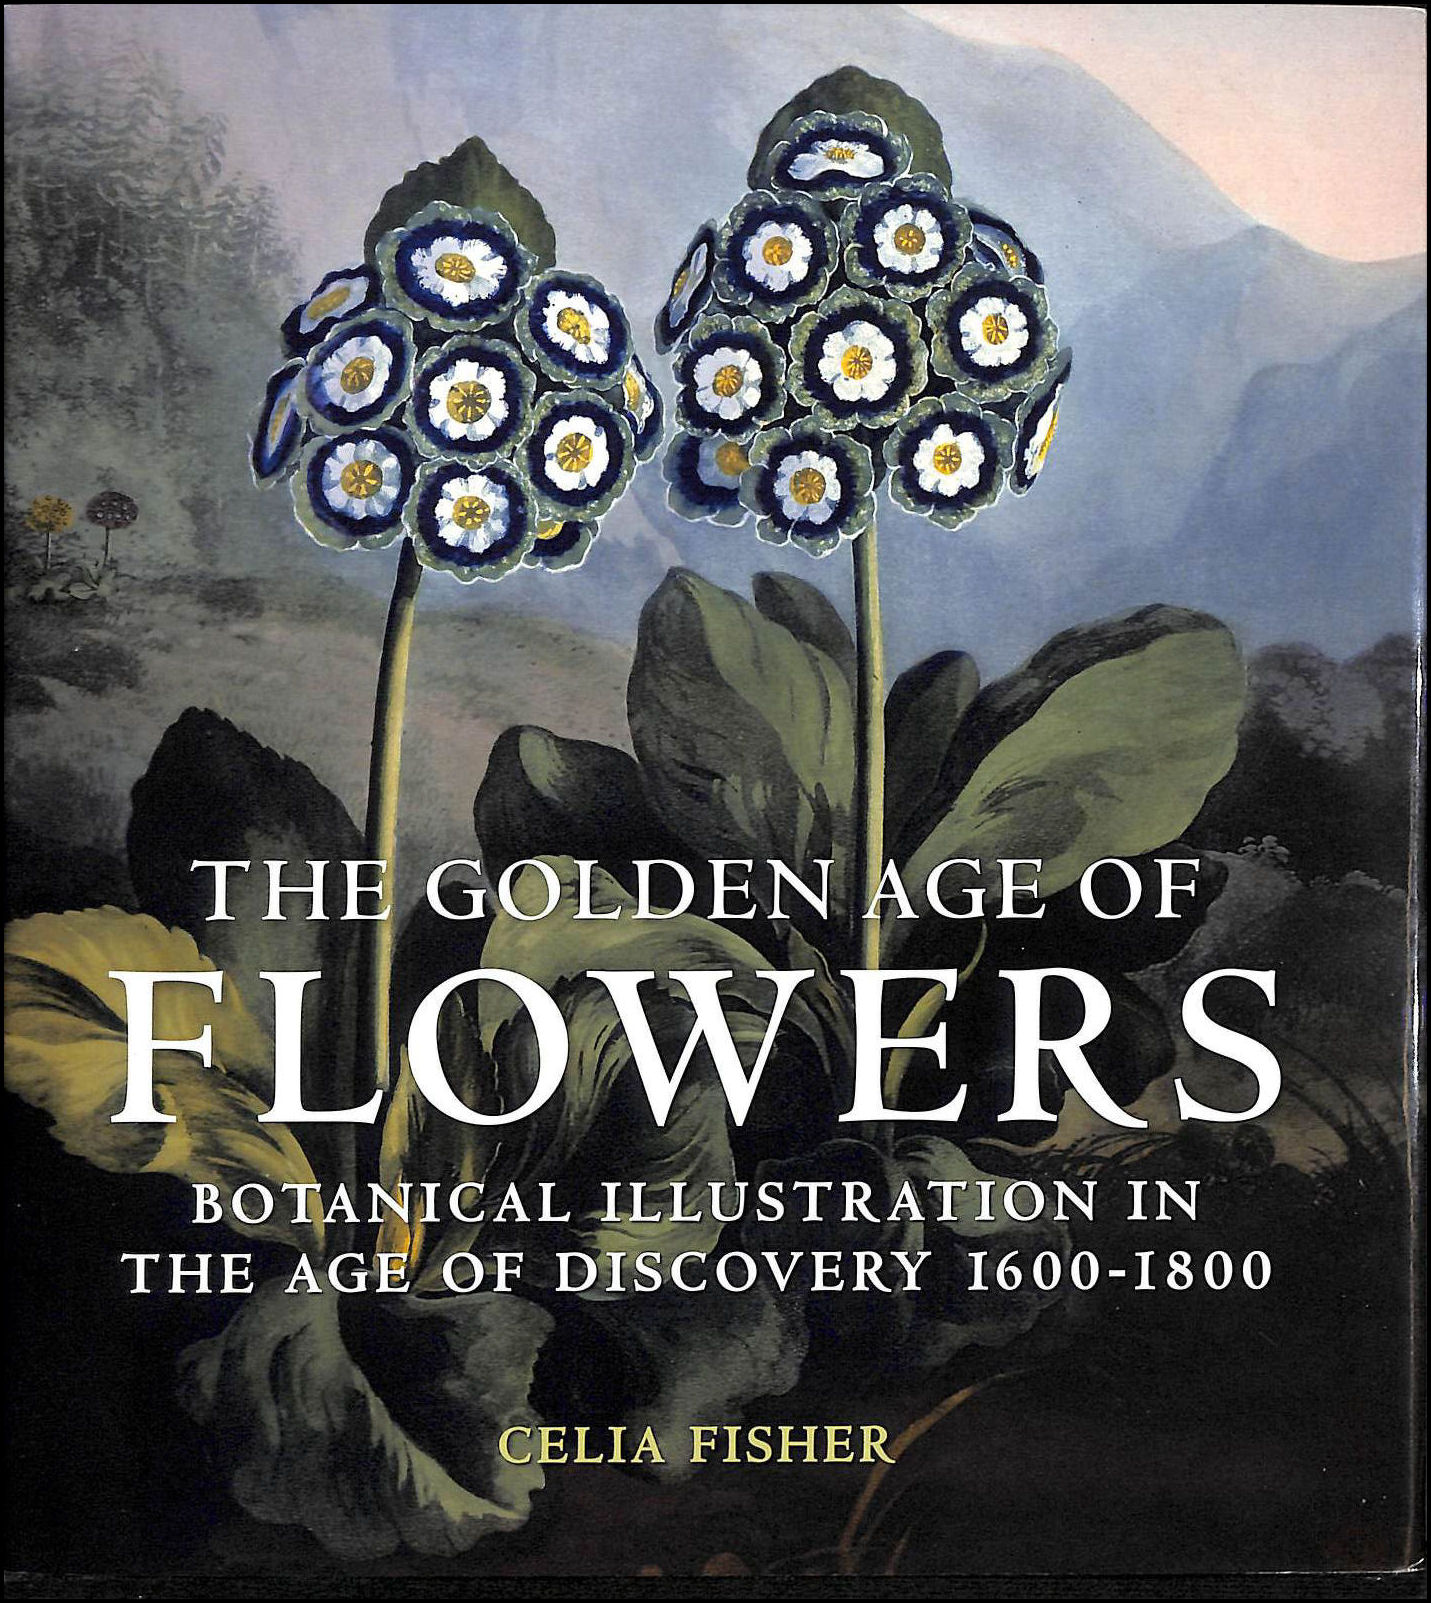 The Golden Age Of Flowers: Botanical Illustration In The Age Of Discovery 1600-1800, Celia Fisher